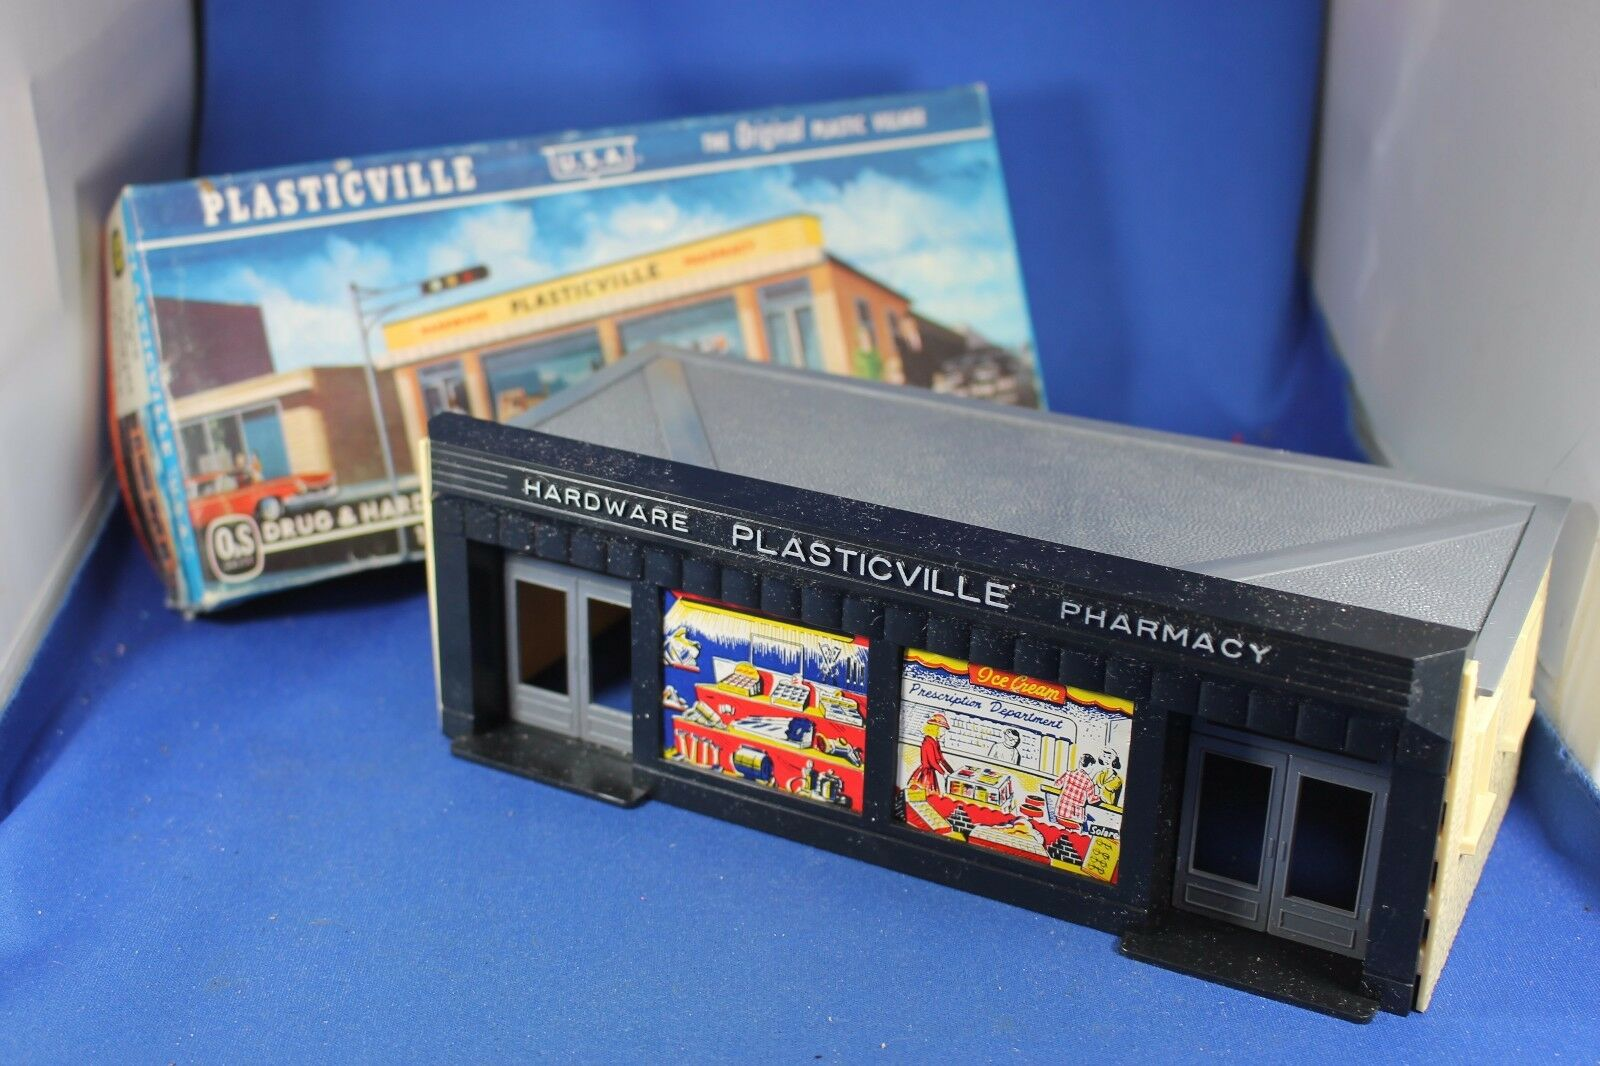 Plasticville - O-O27 - Hardware & Pharmacy - HTF Box - Excellent Condition